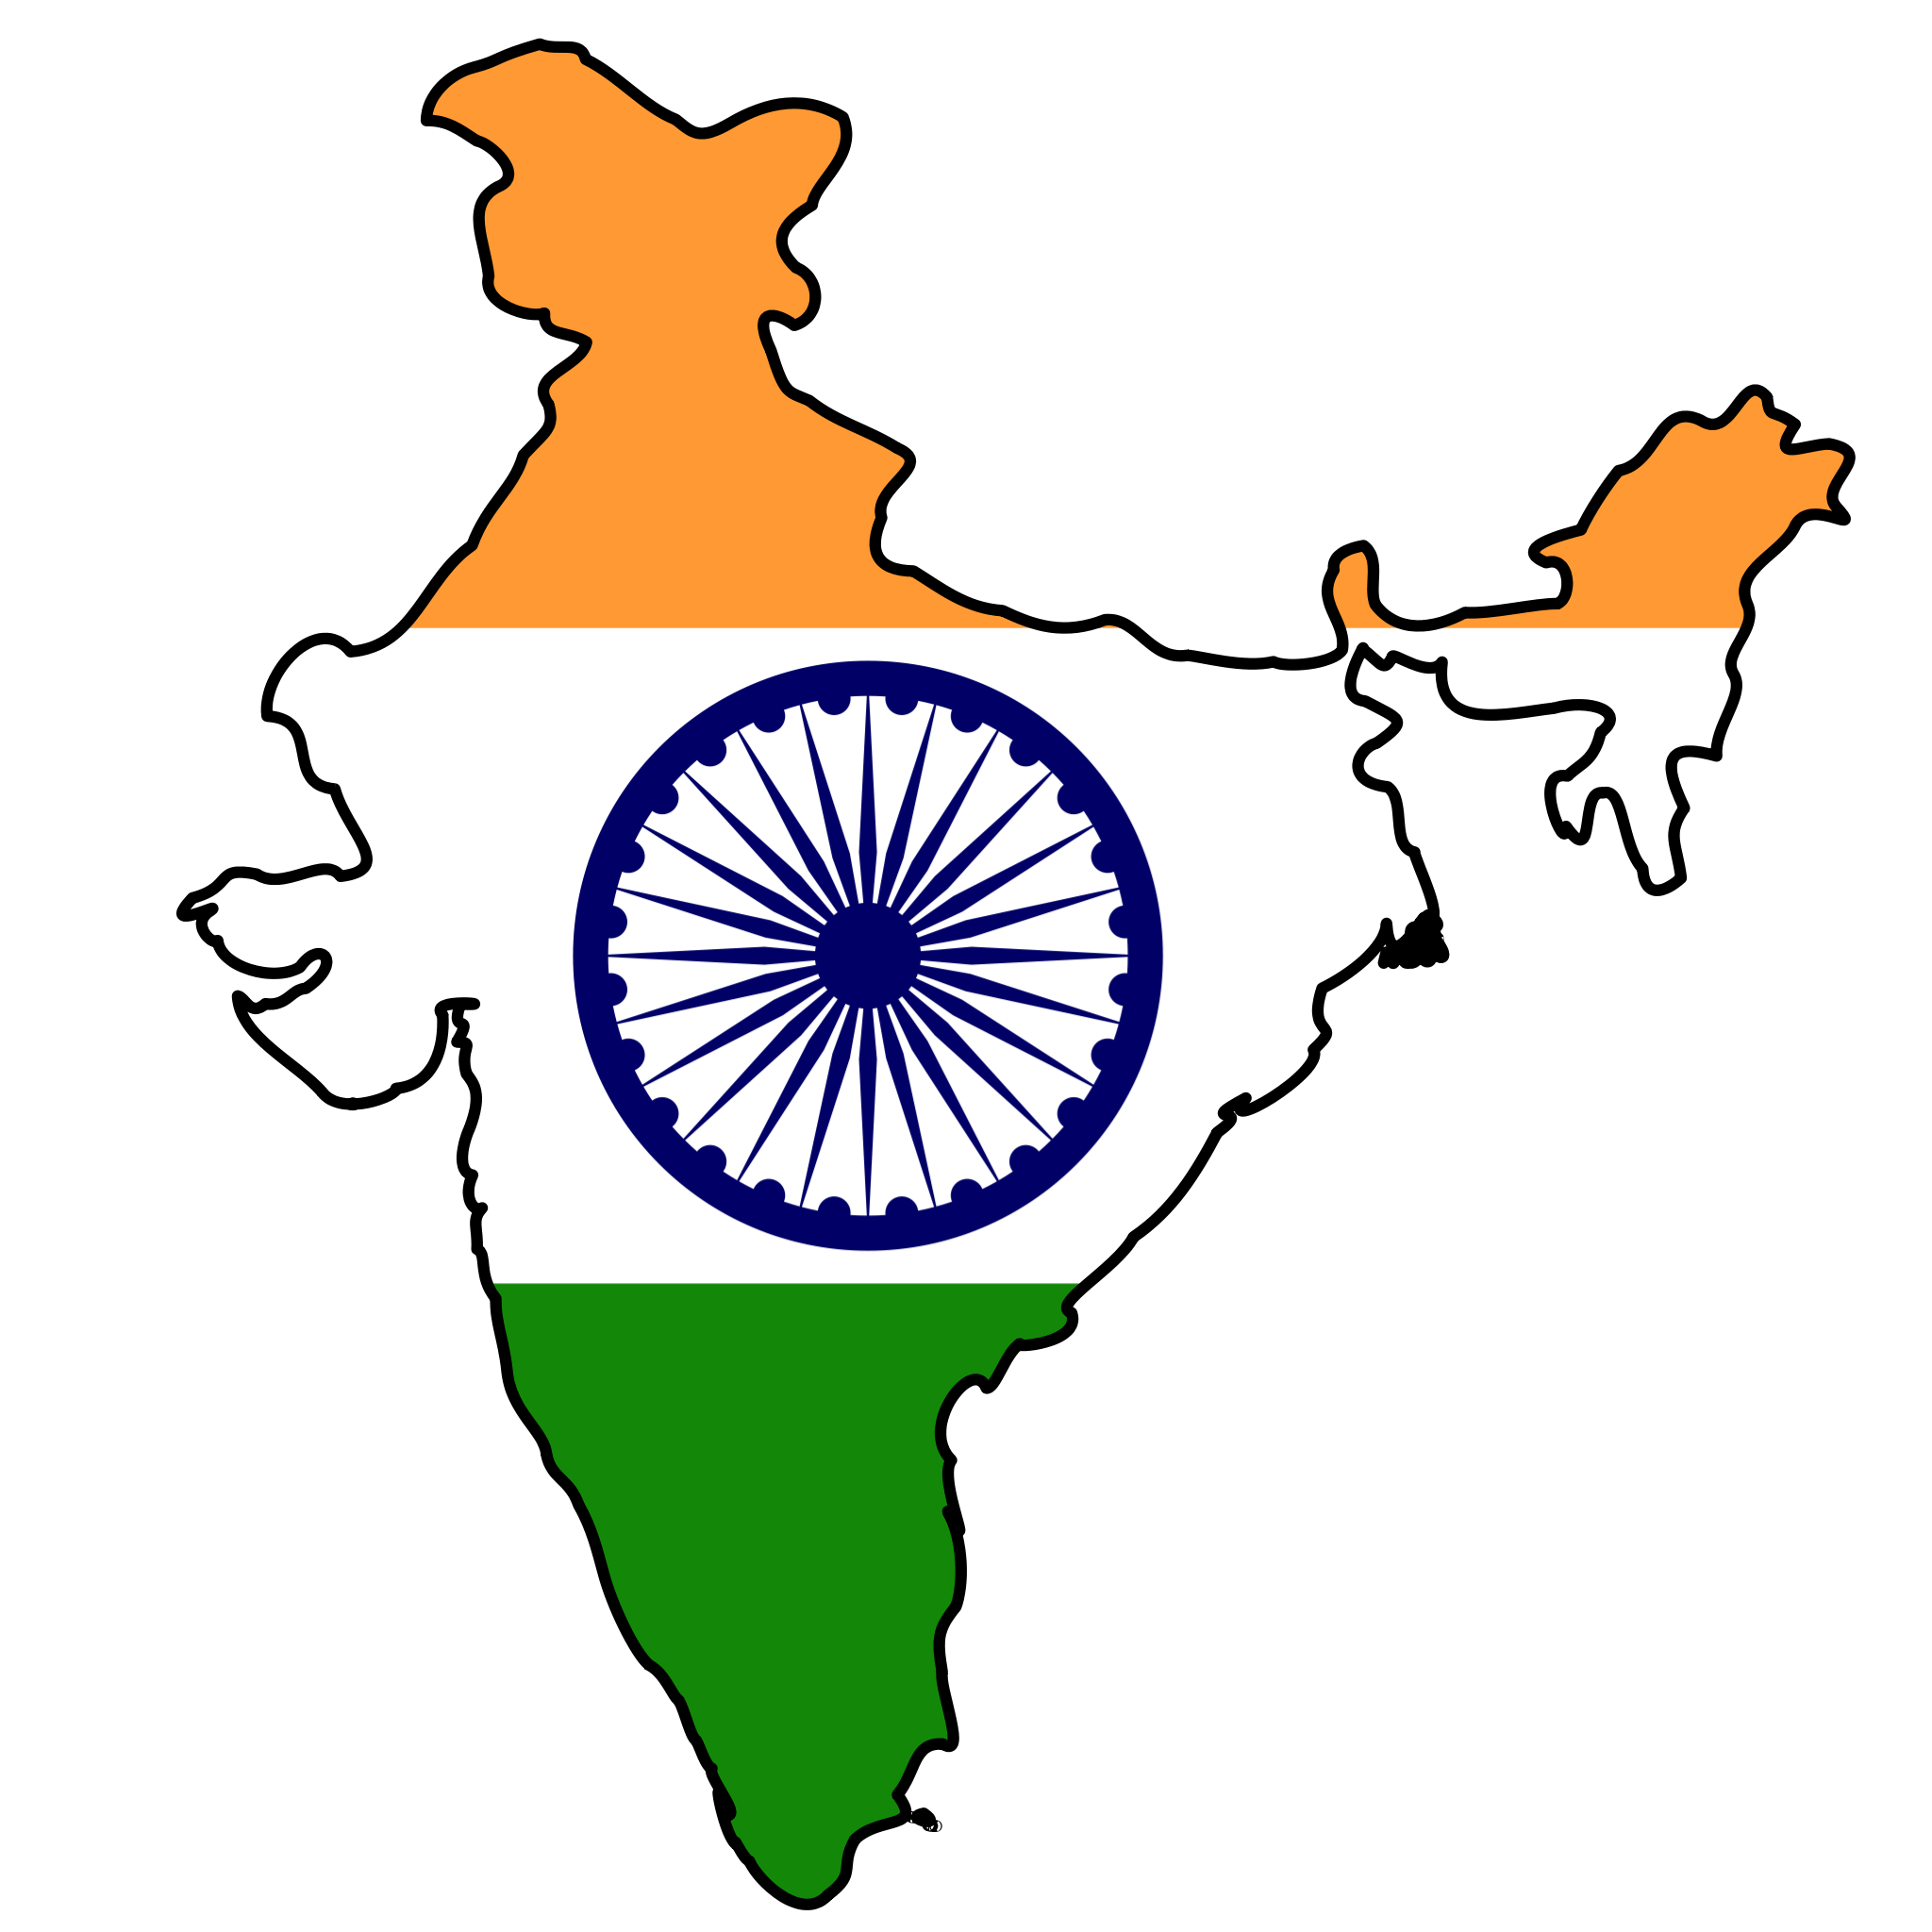 India Map Outline - Viewing Gallery - ClipArt Best - ClipArt Best